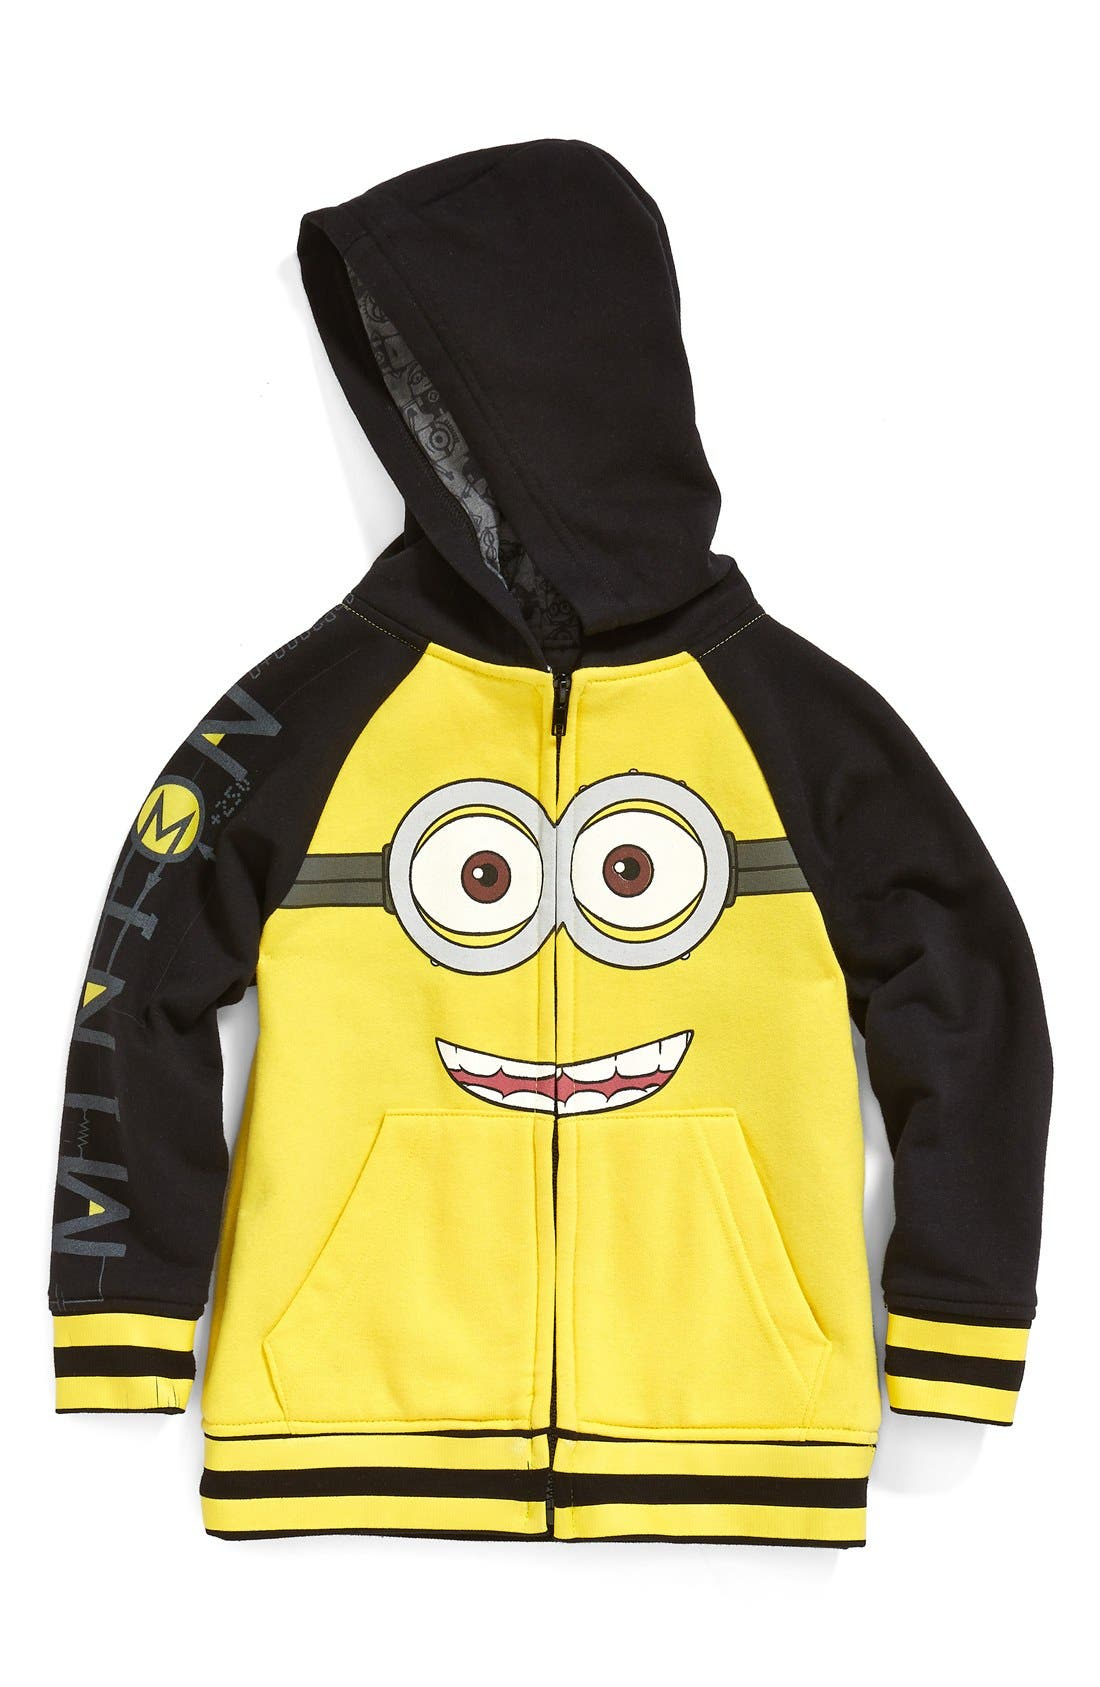 Alternate Image 1 Selected - Jem 'Goggle Minion - Despicable Me™' Zip Front Hoodie (Toddler Boys & Little Boys) (Nordstrom Exclusive)